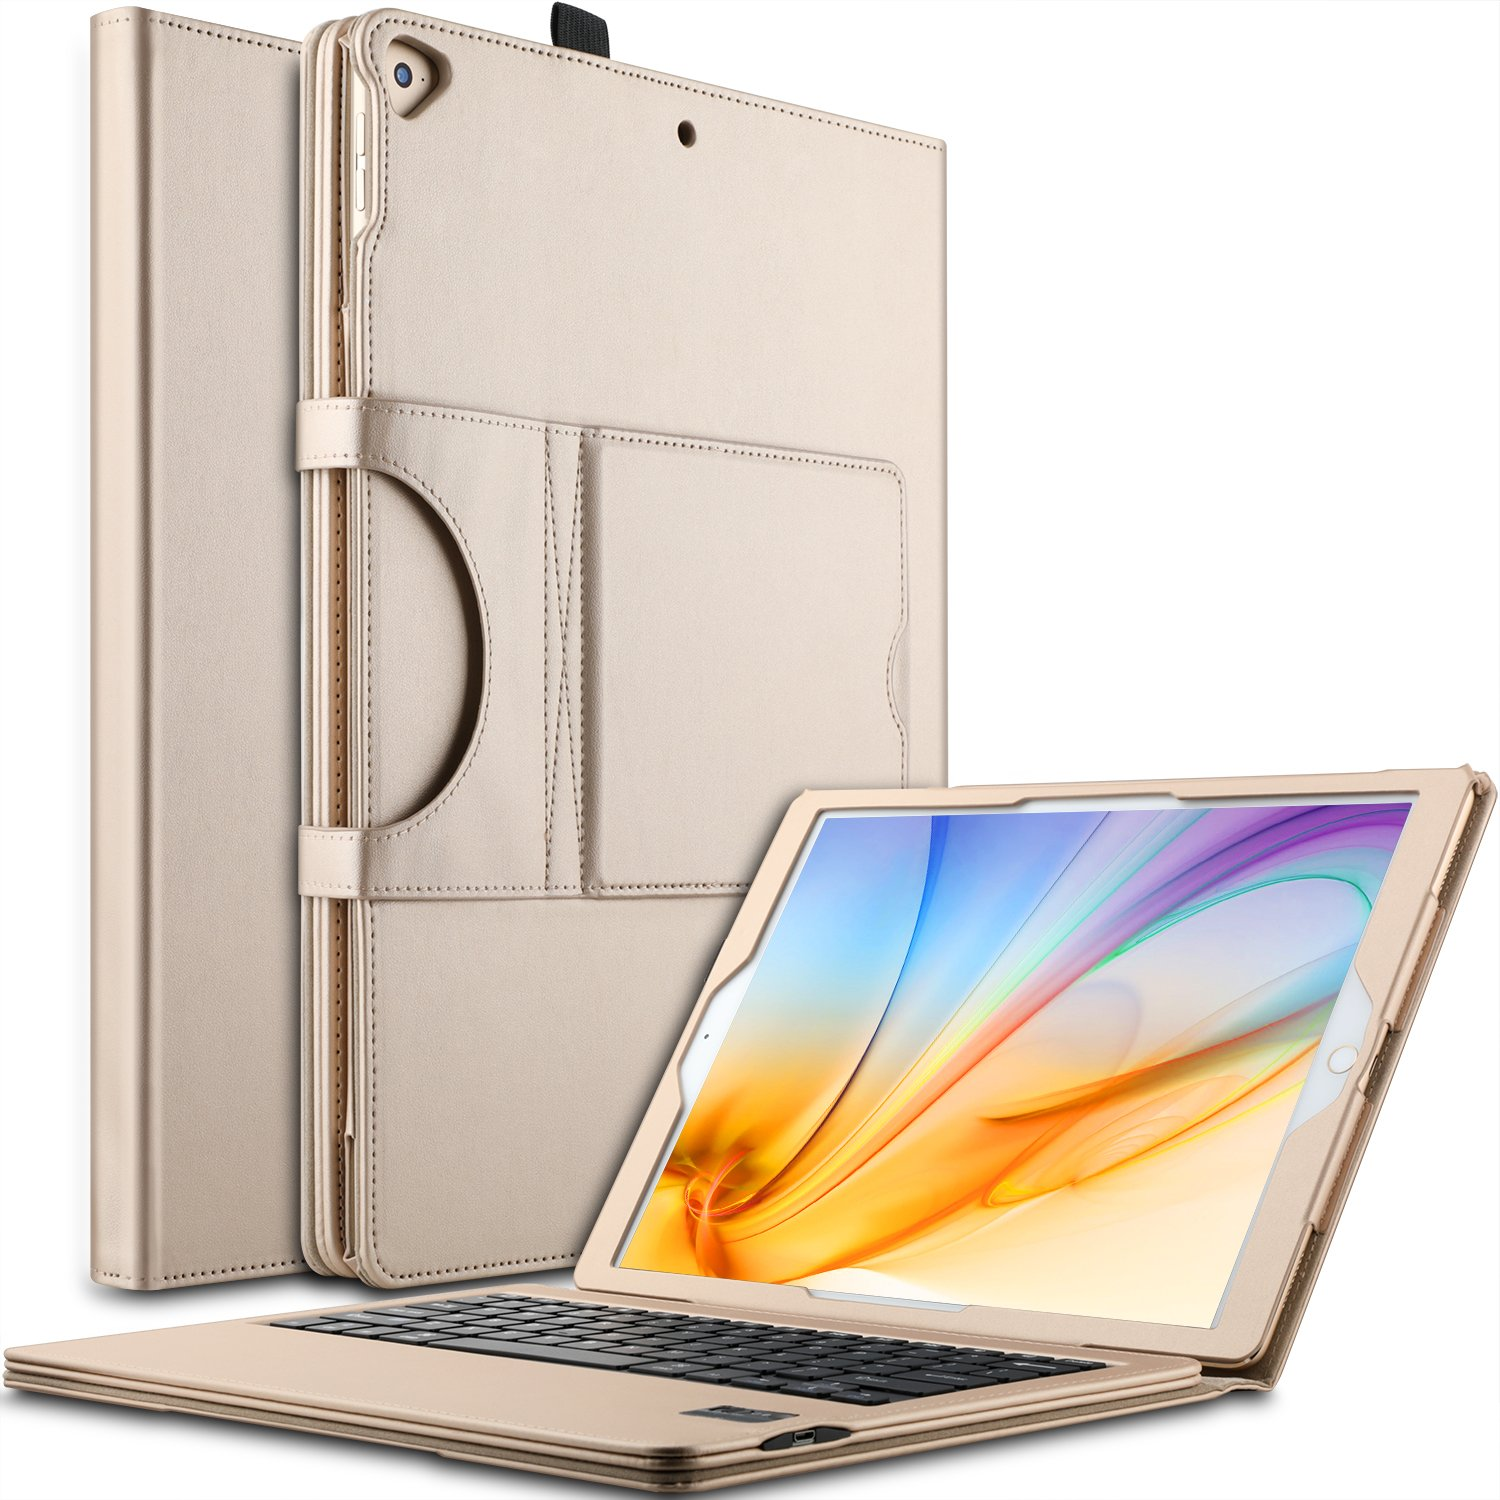 IVSO Apple iPad Pro 12.9 Case With Keyboard Ultra-Thin DETACHABLE Wireless Keyboard Stand Case/Cover for Apple iPad Pro 12.9-inch 2015/2017 Version Tablet (Gold)